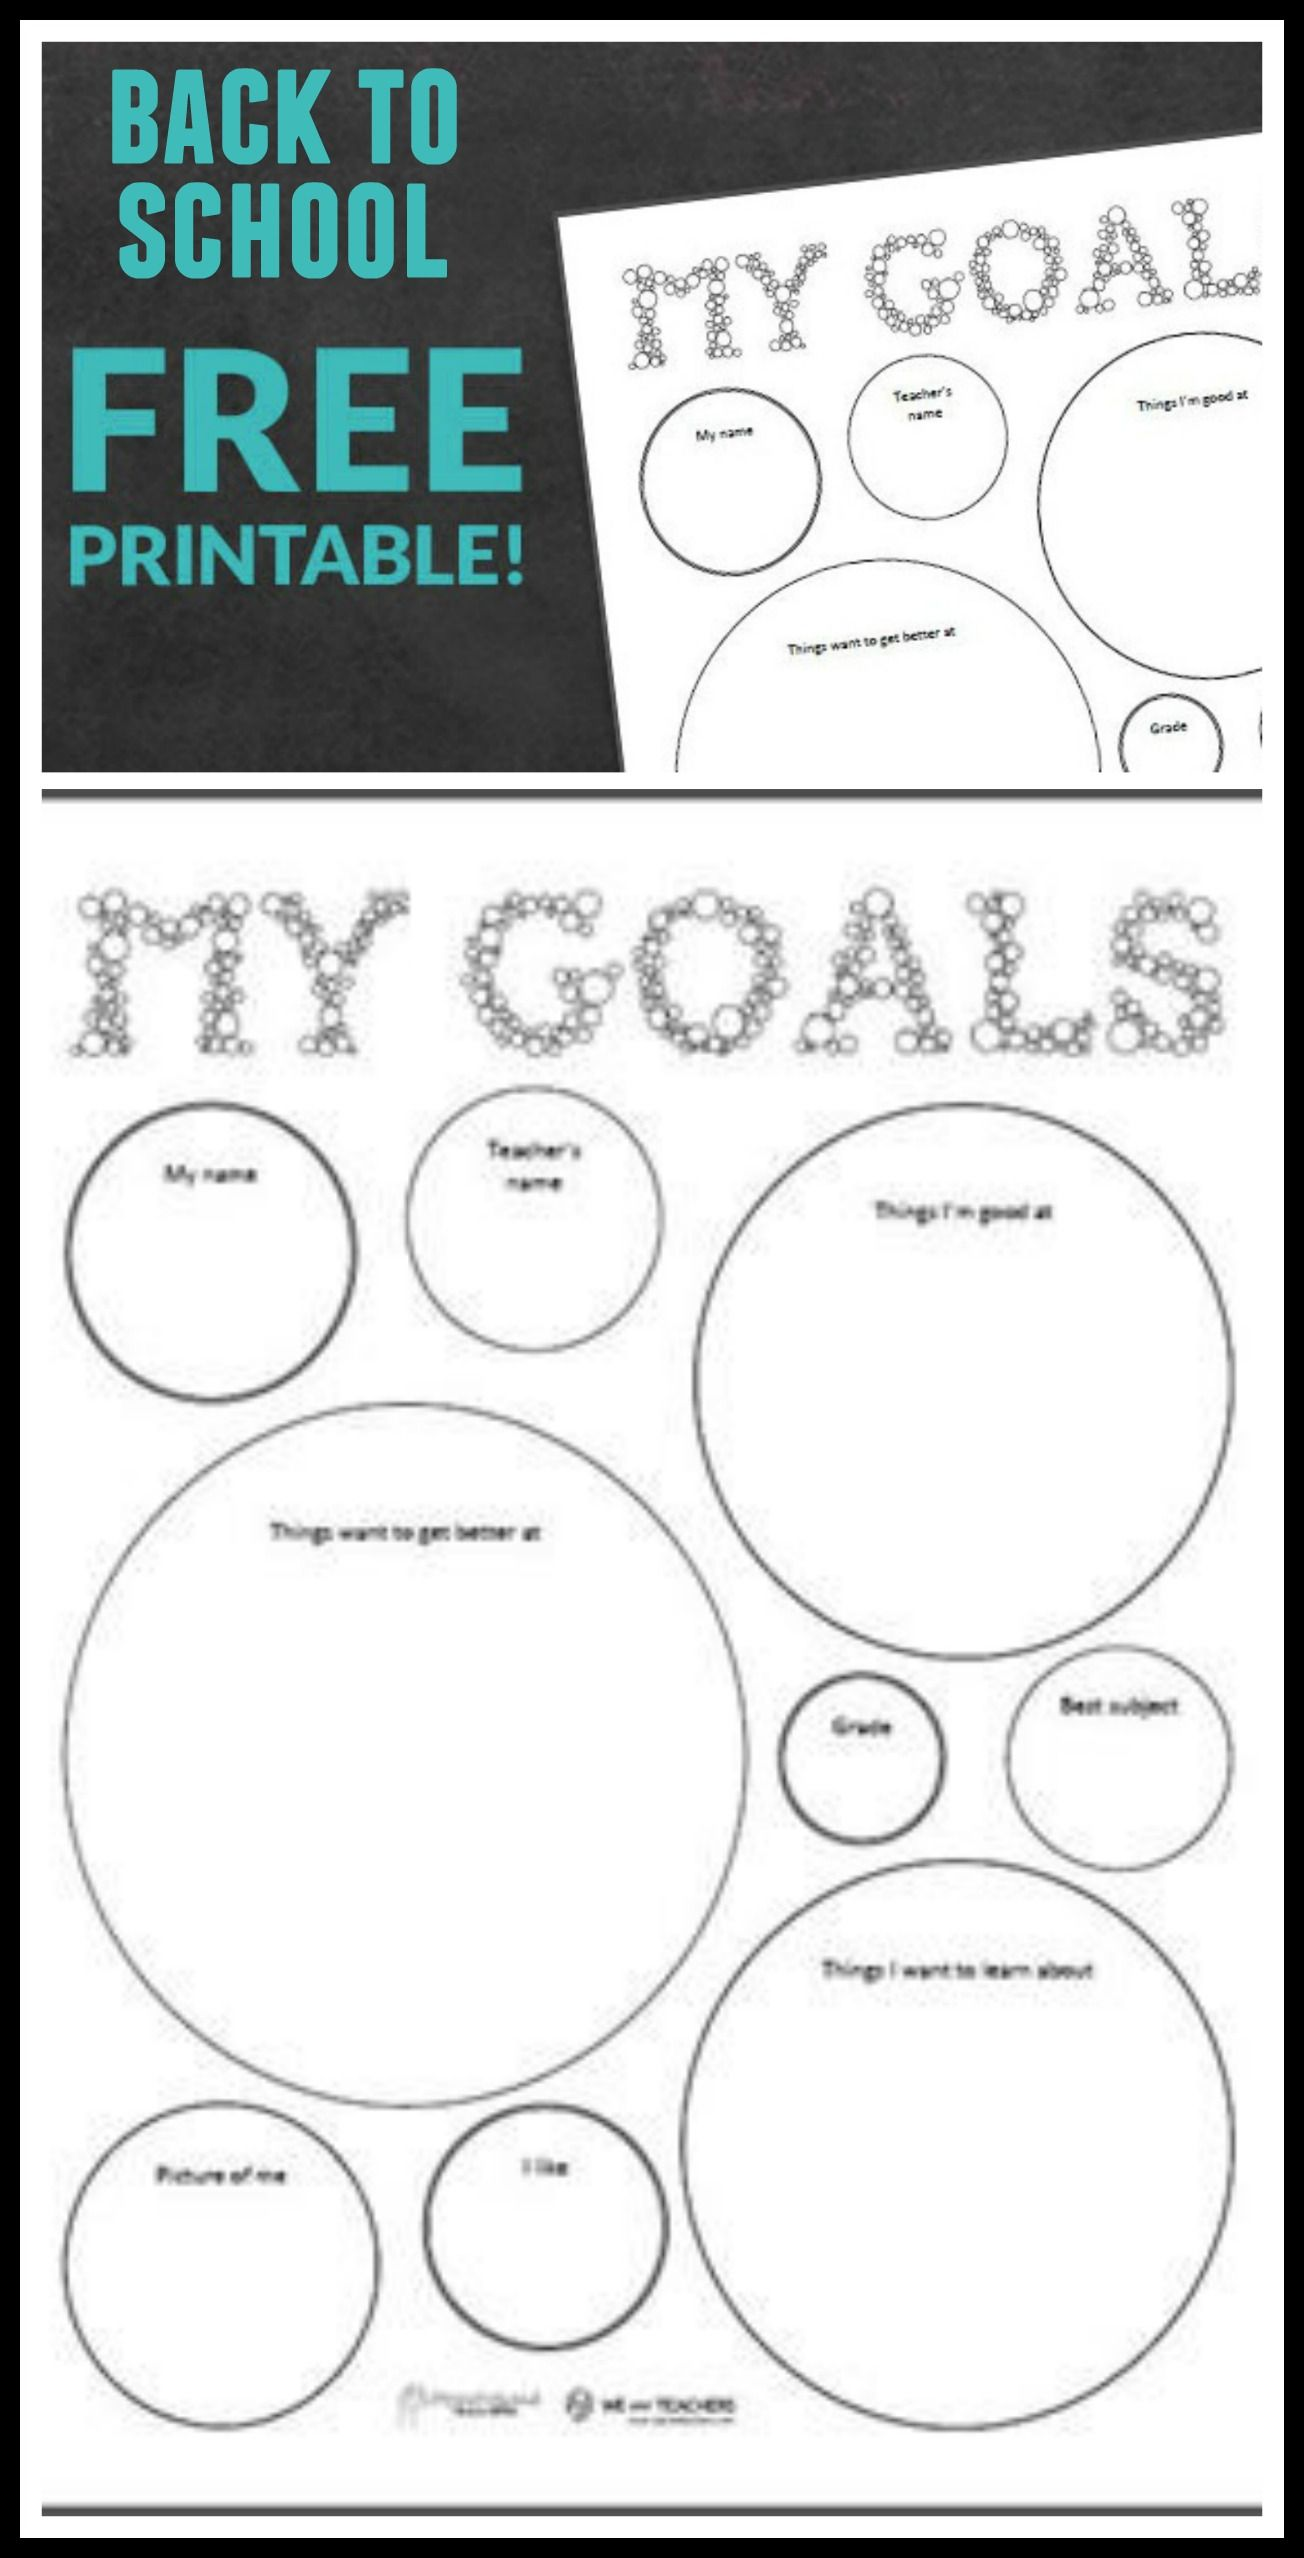 Help Students Set Goals This School Year With Our Free Worksheet School Goals Goals Worksheet Goal Setting For Students